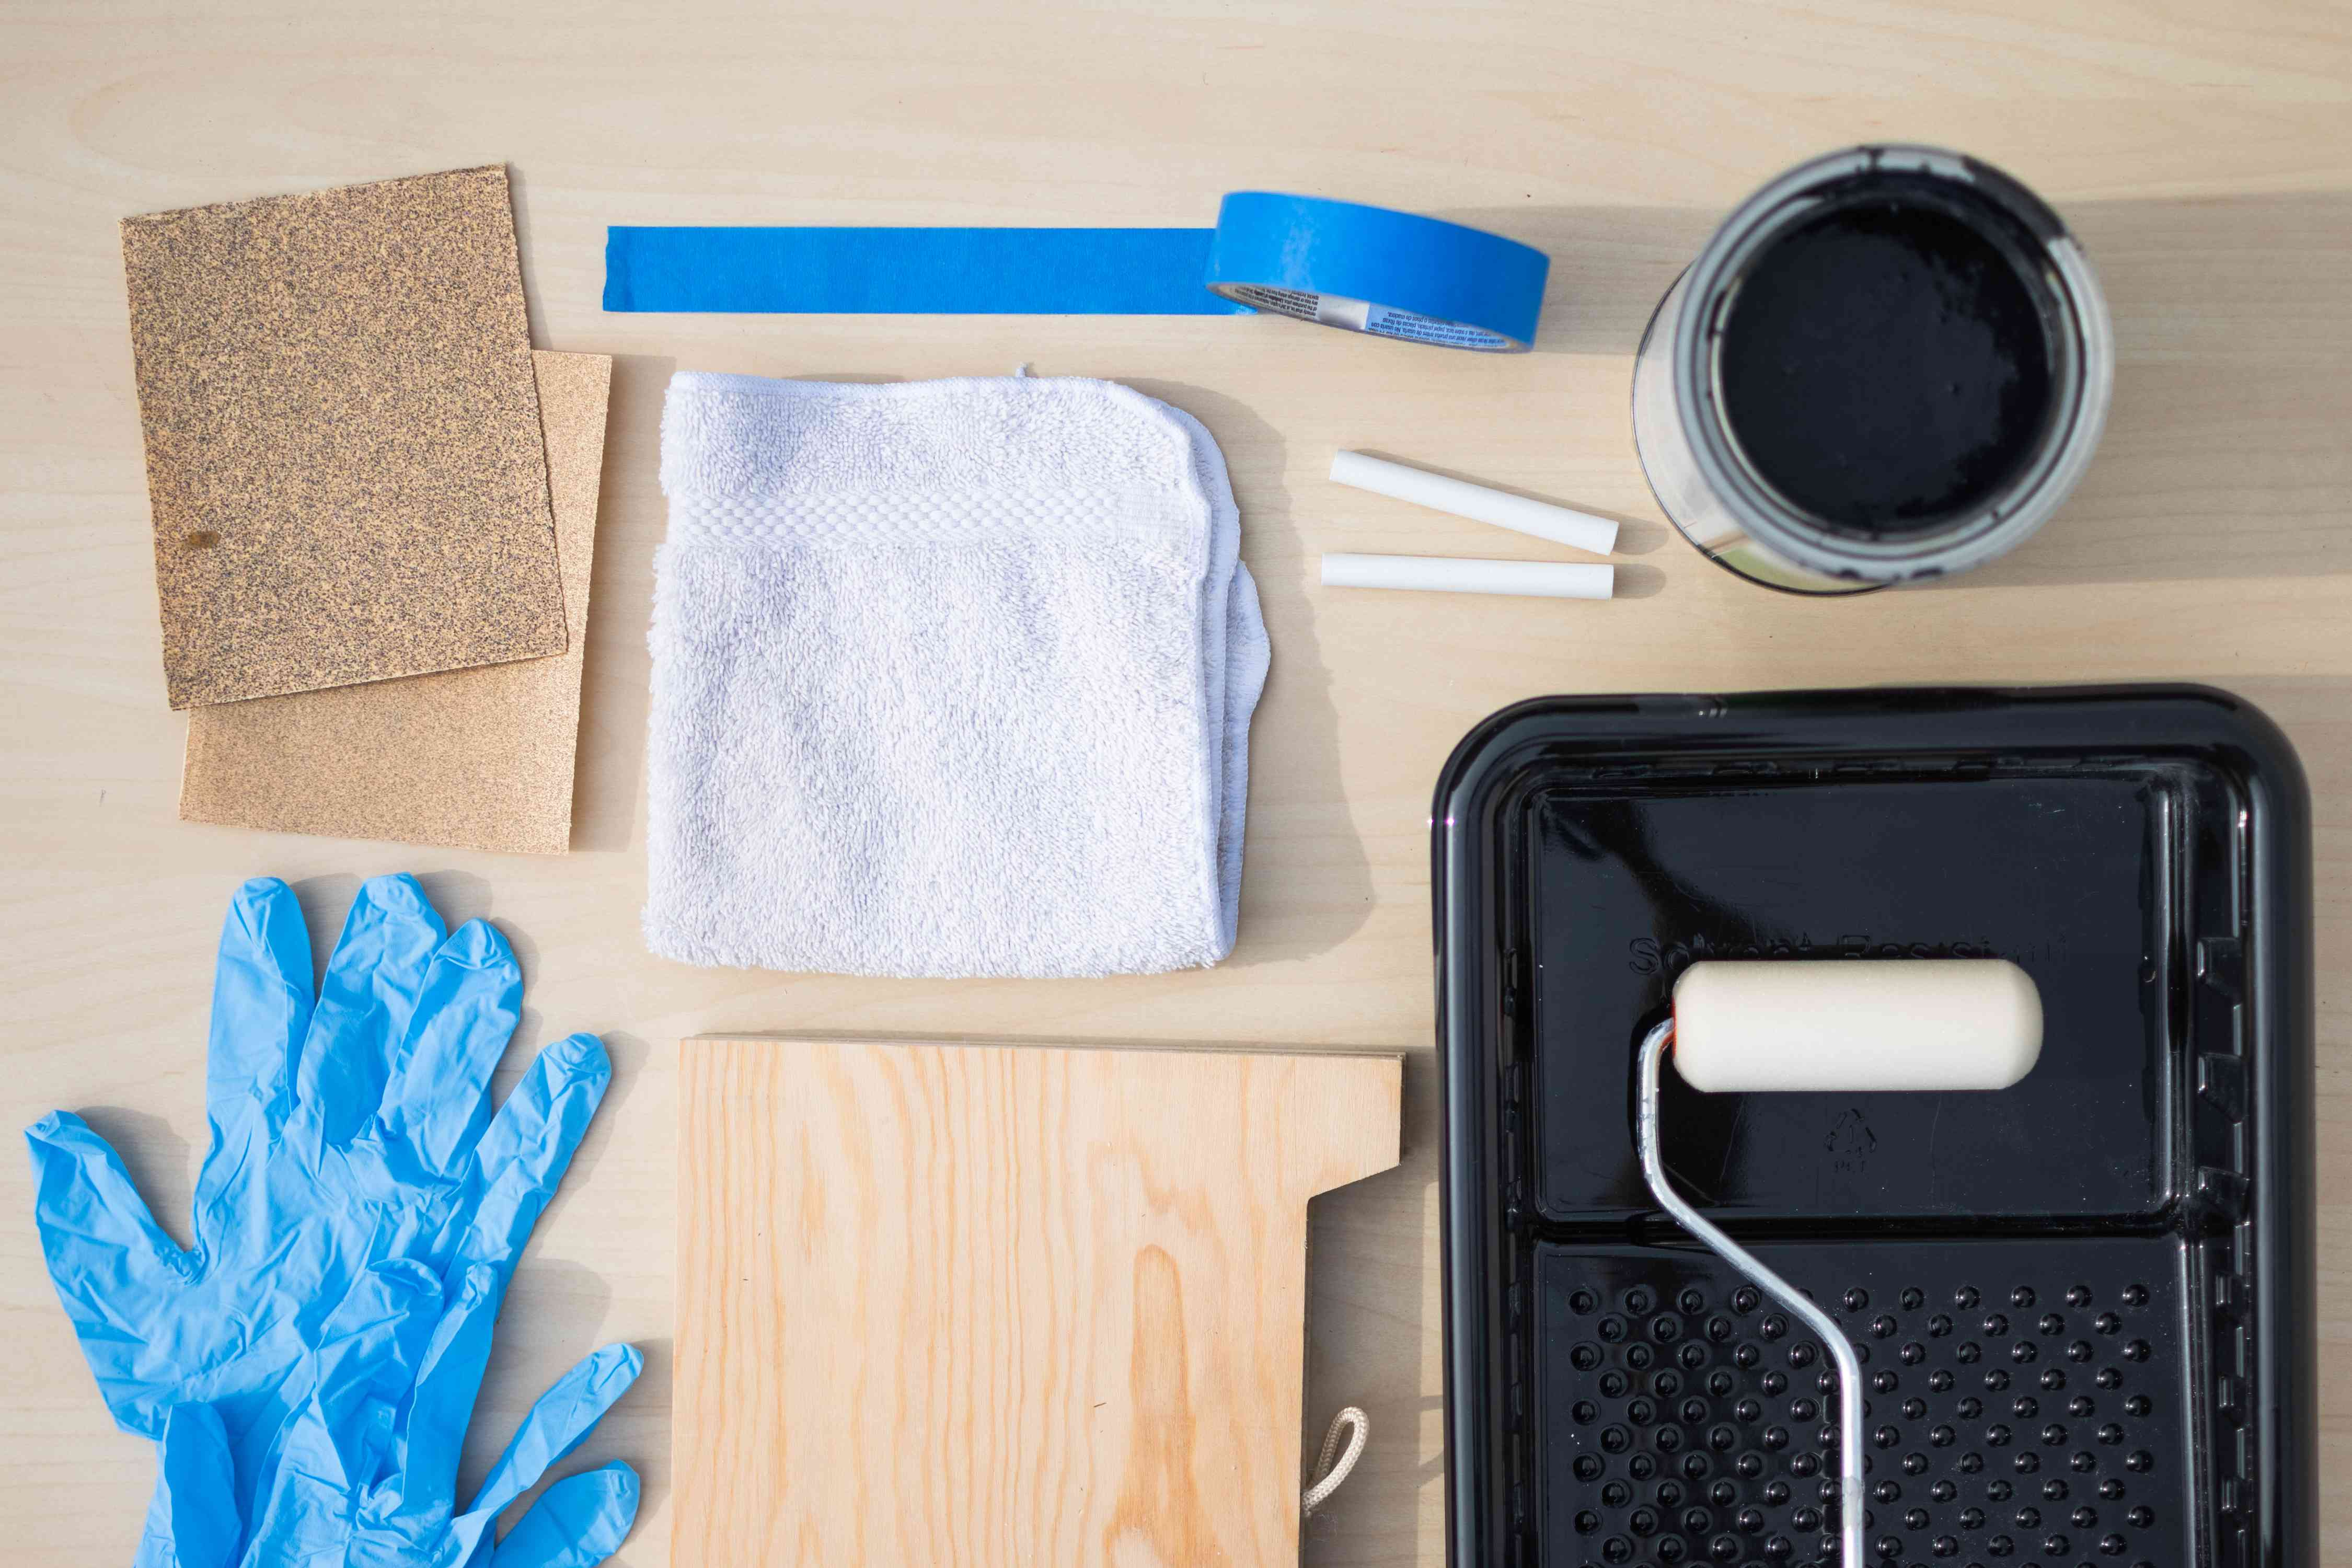 Materials and tools to use and apply chalkboard paint